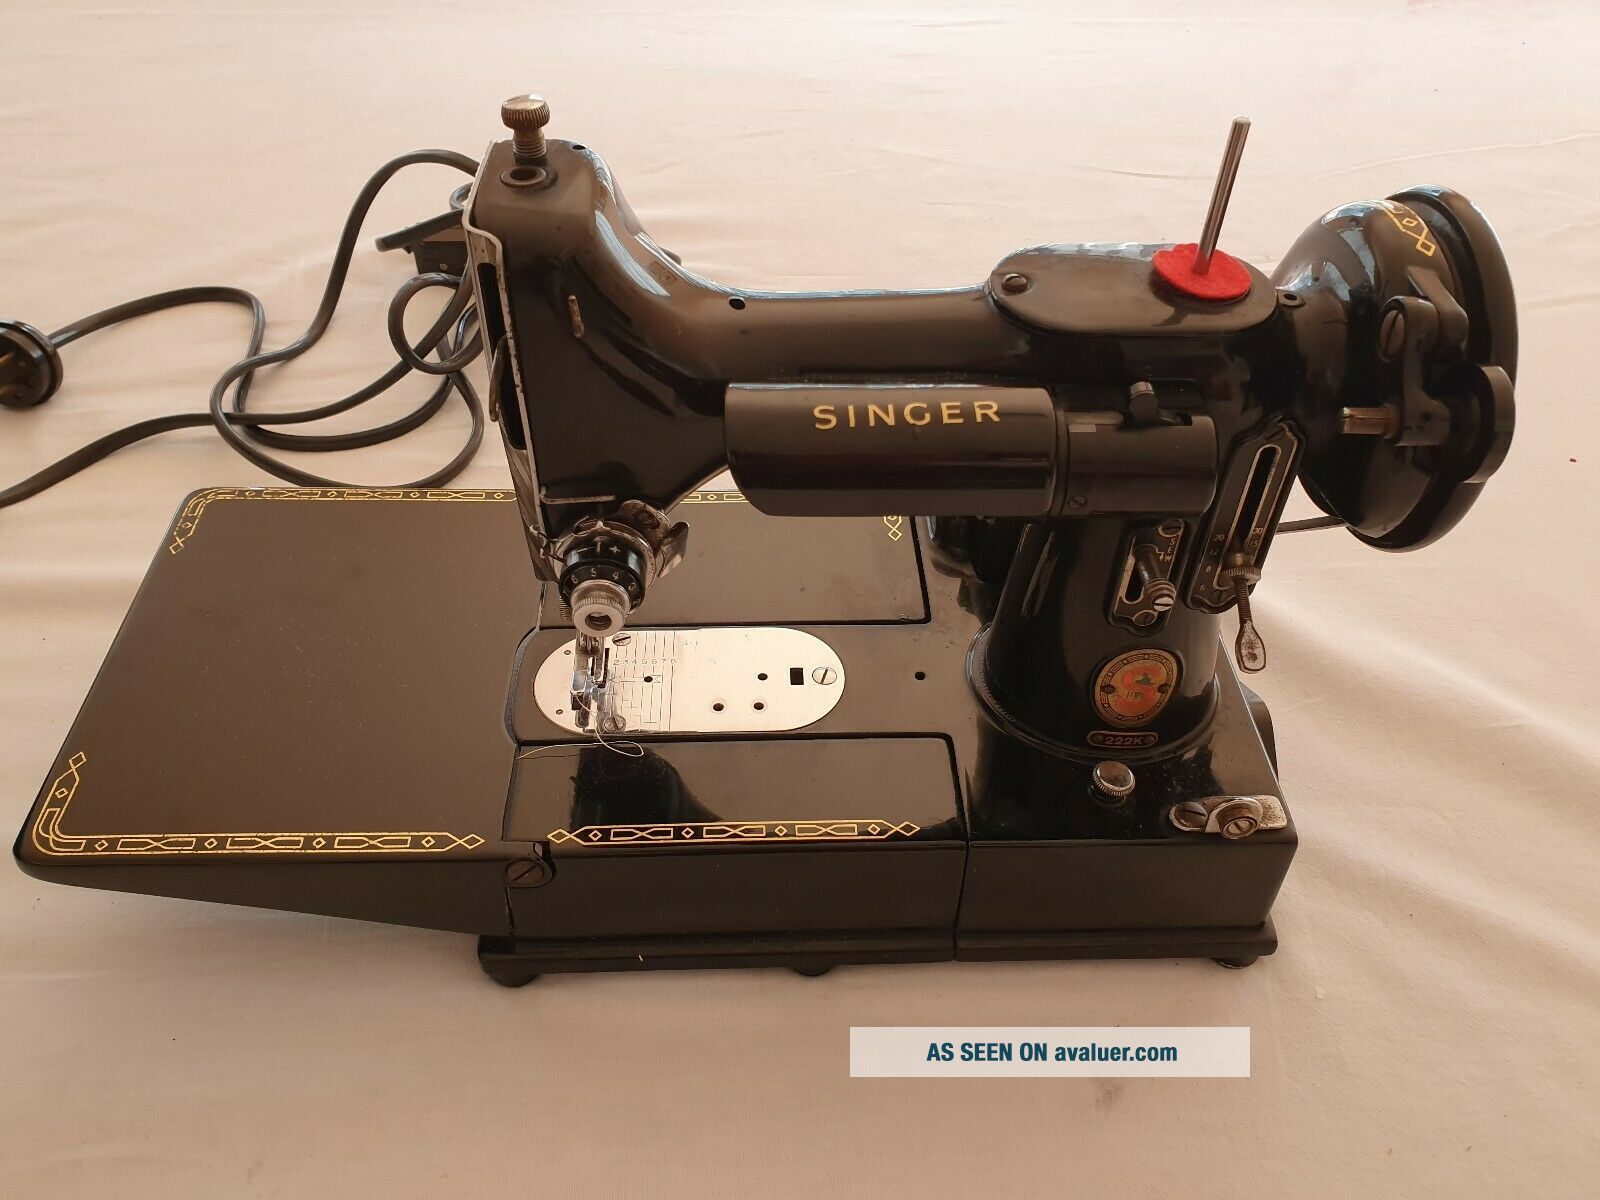 Antique singer electric sewing machine.  Model 222K Featherweight portable